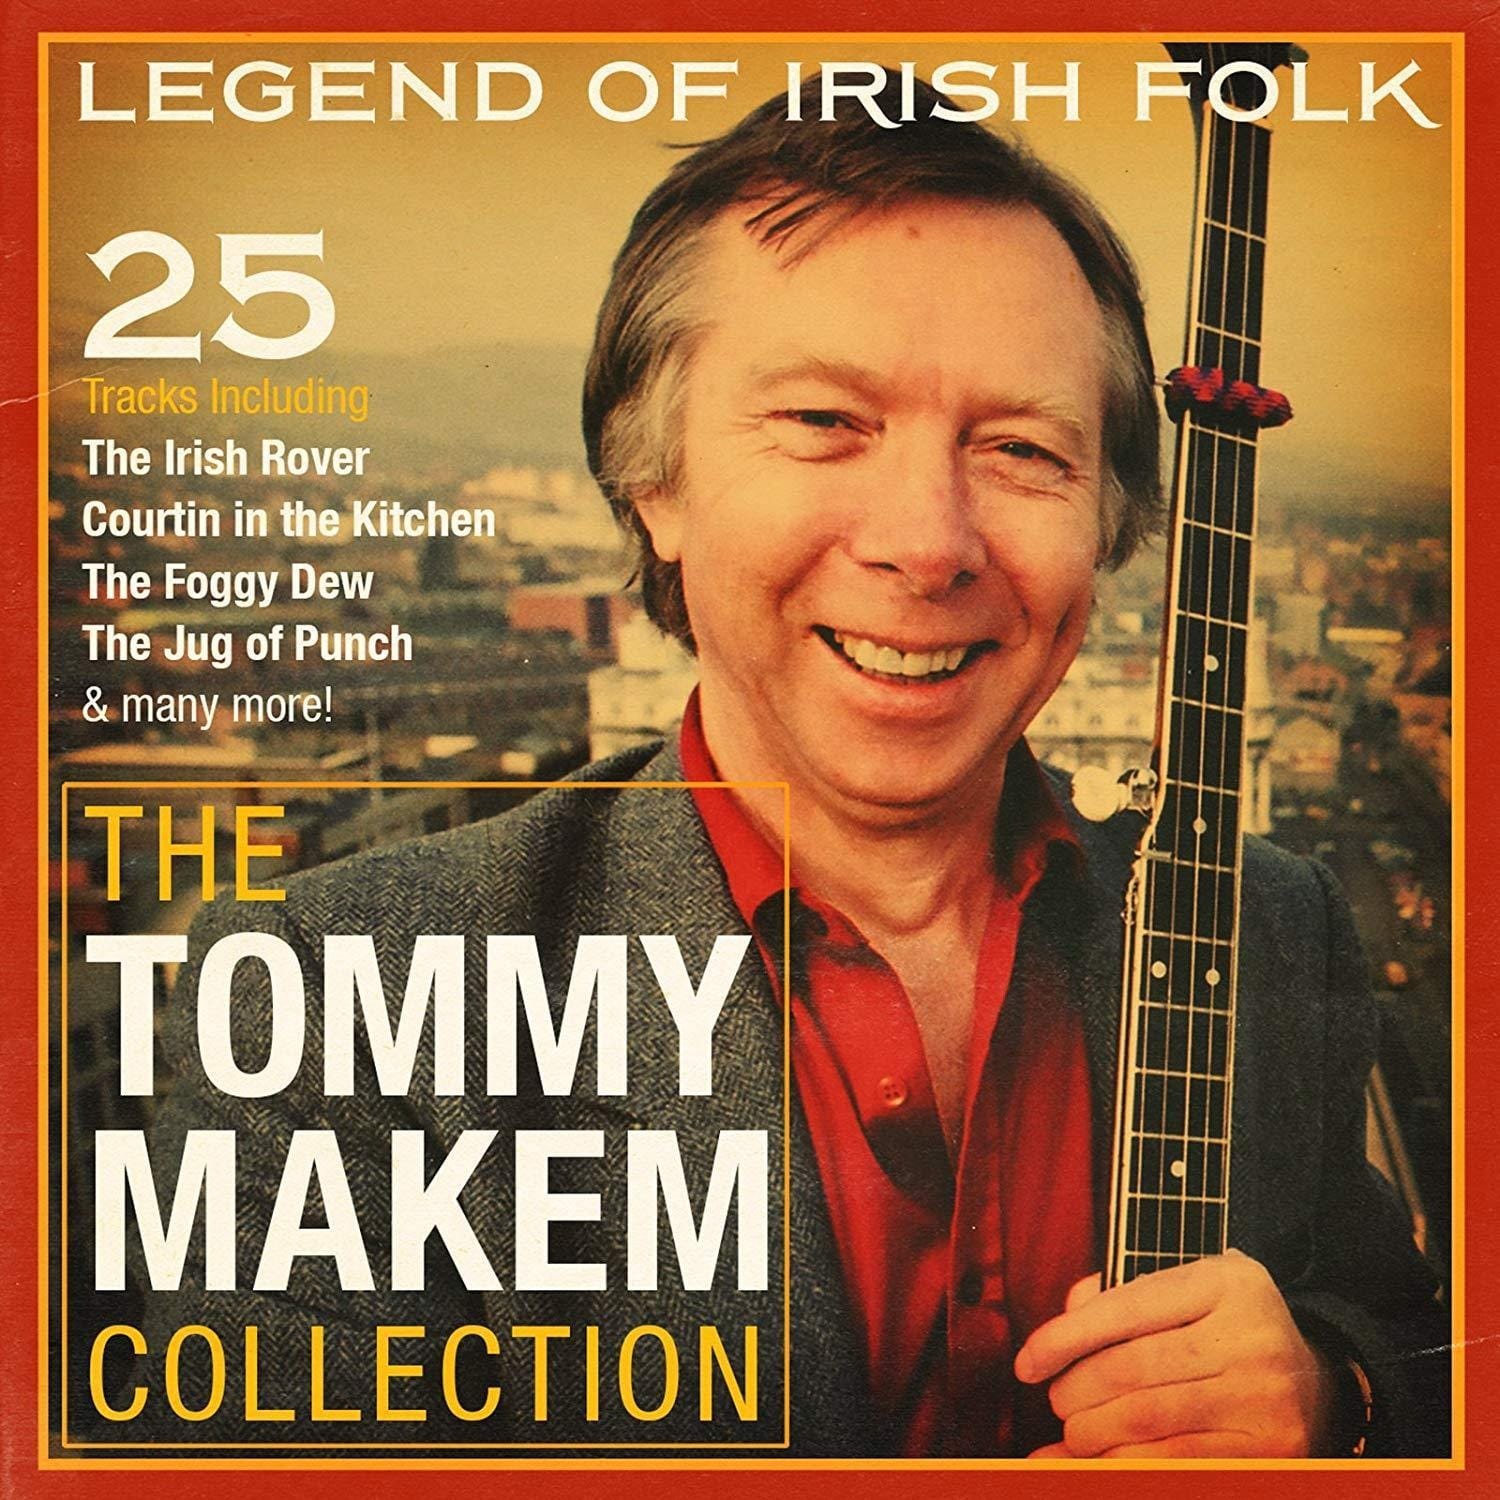 The Tommy Makem Collection [CD]